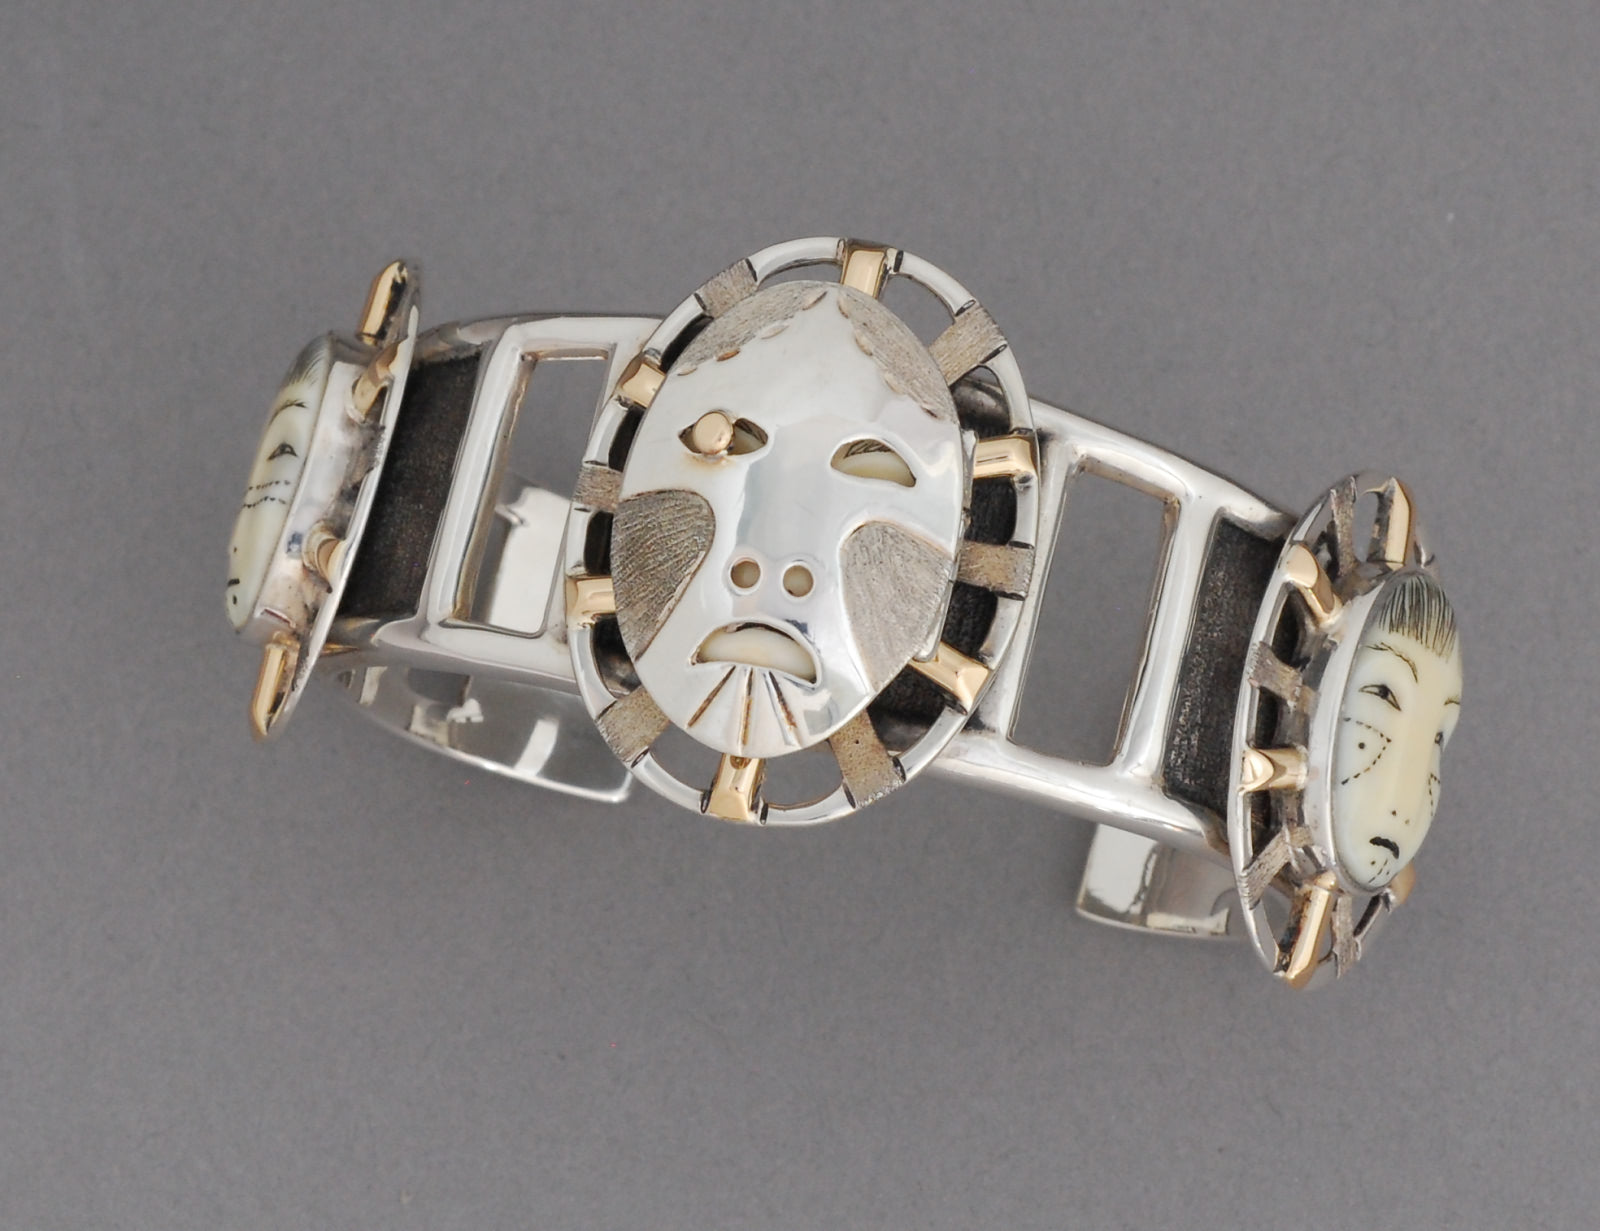 Woman In The Moon Bracelet by Denise Wallace #67 of 200